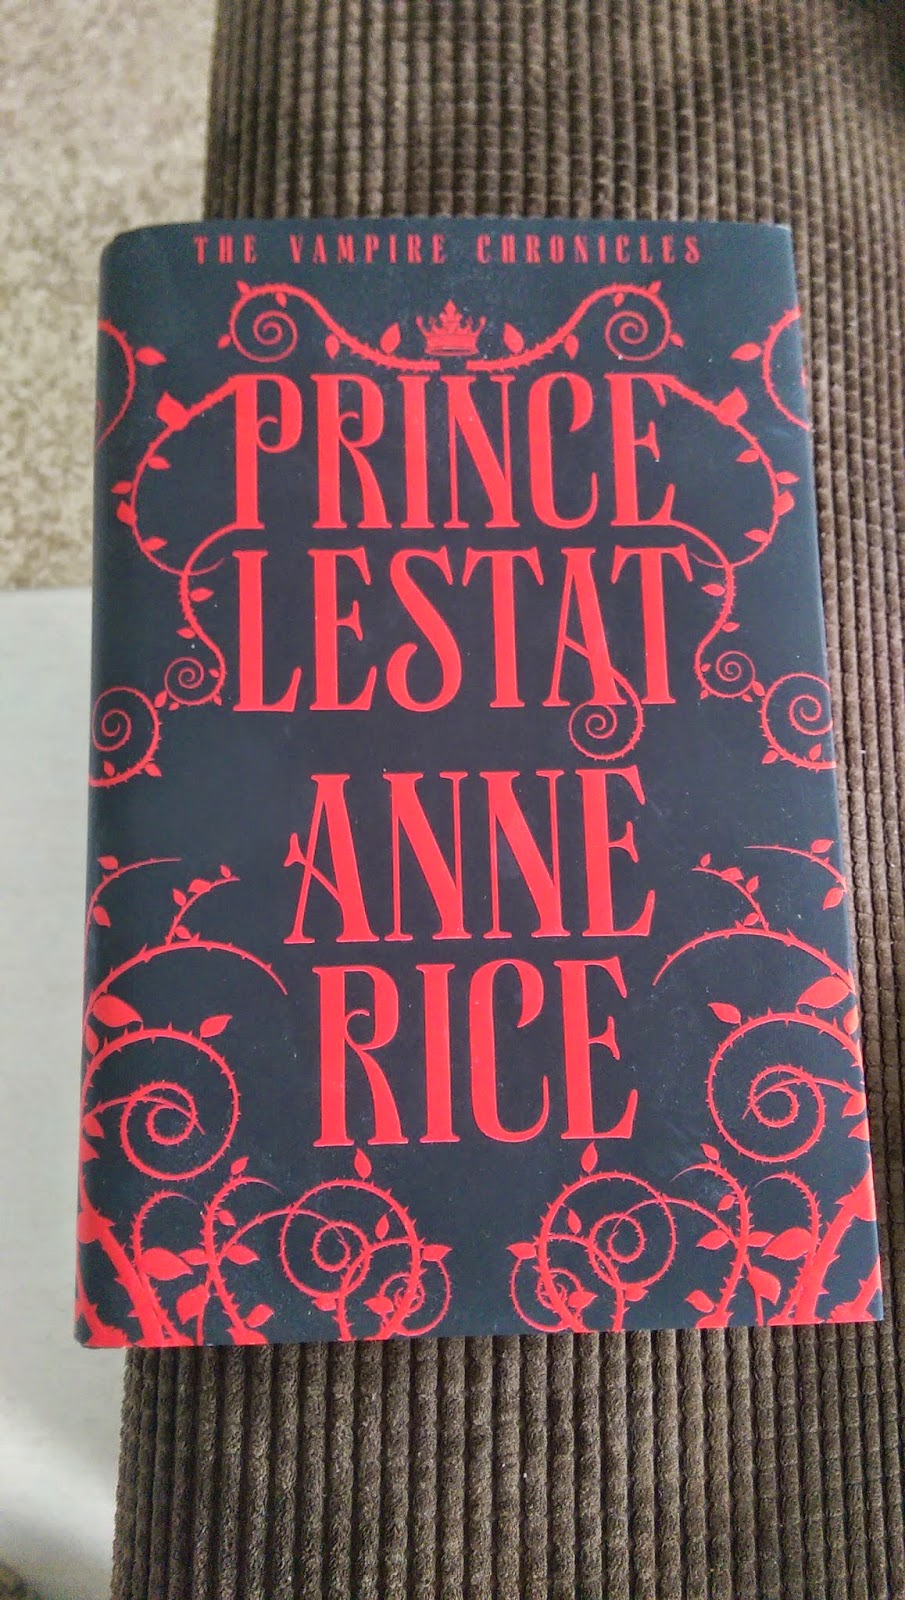 Signed copy of Prince Lestat